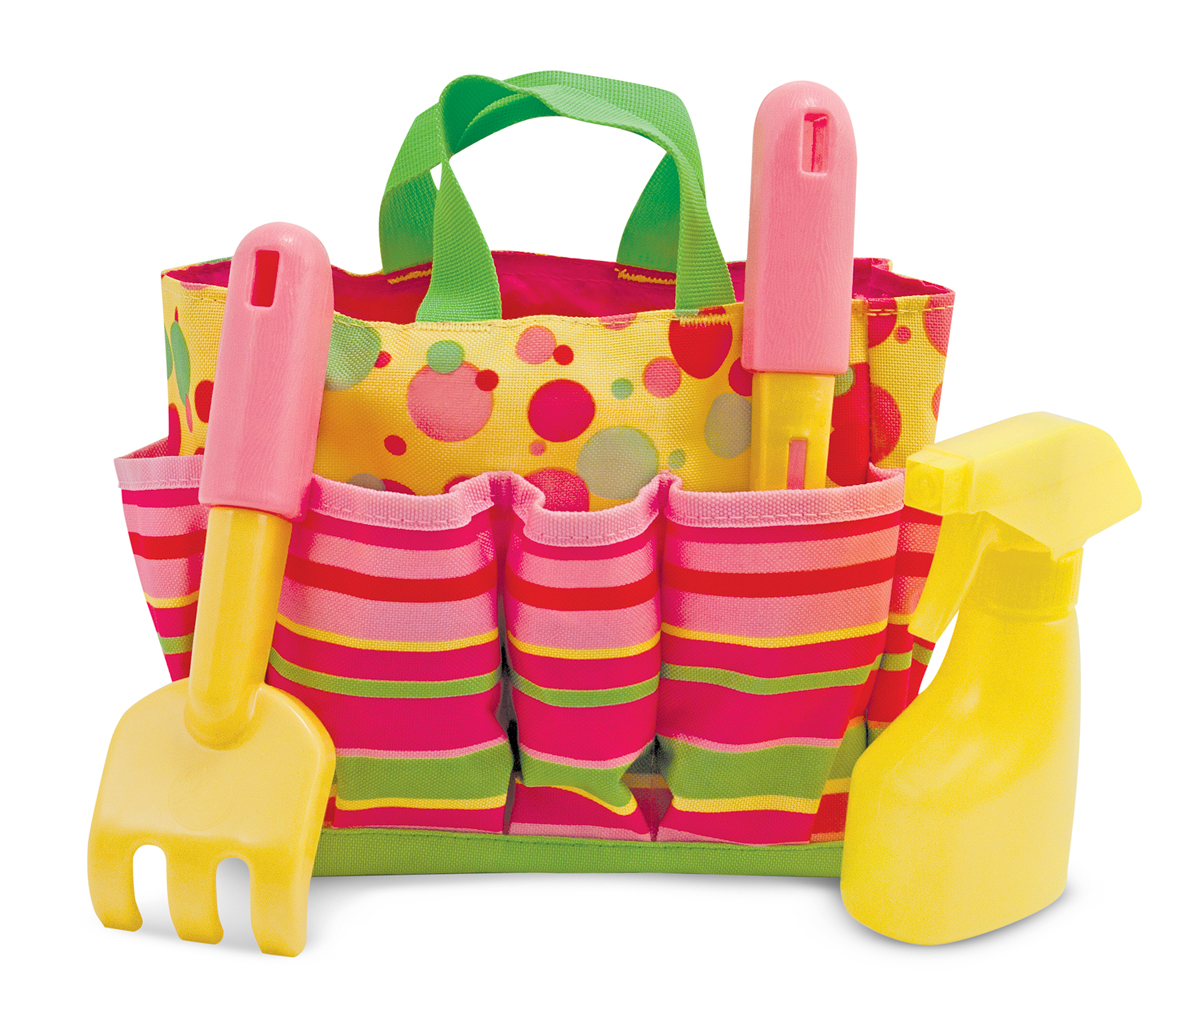 35 things for kids 39 summer fun gift baskets earning and for Gardening tools toddlers